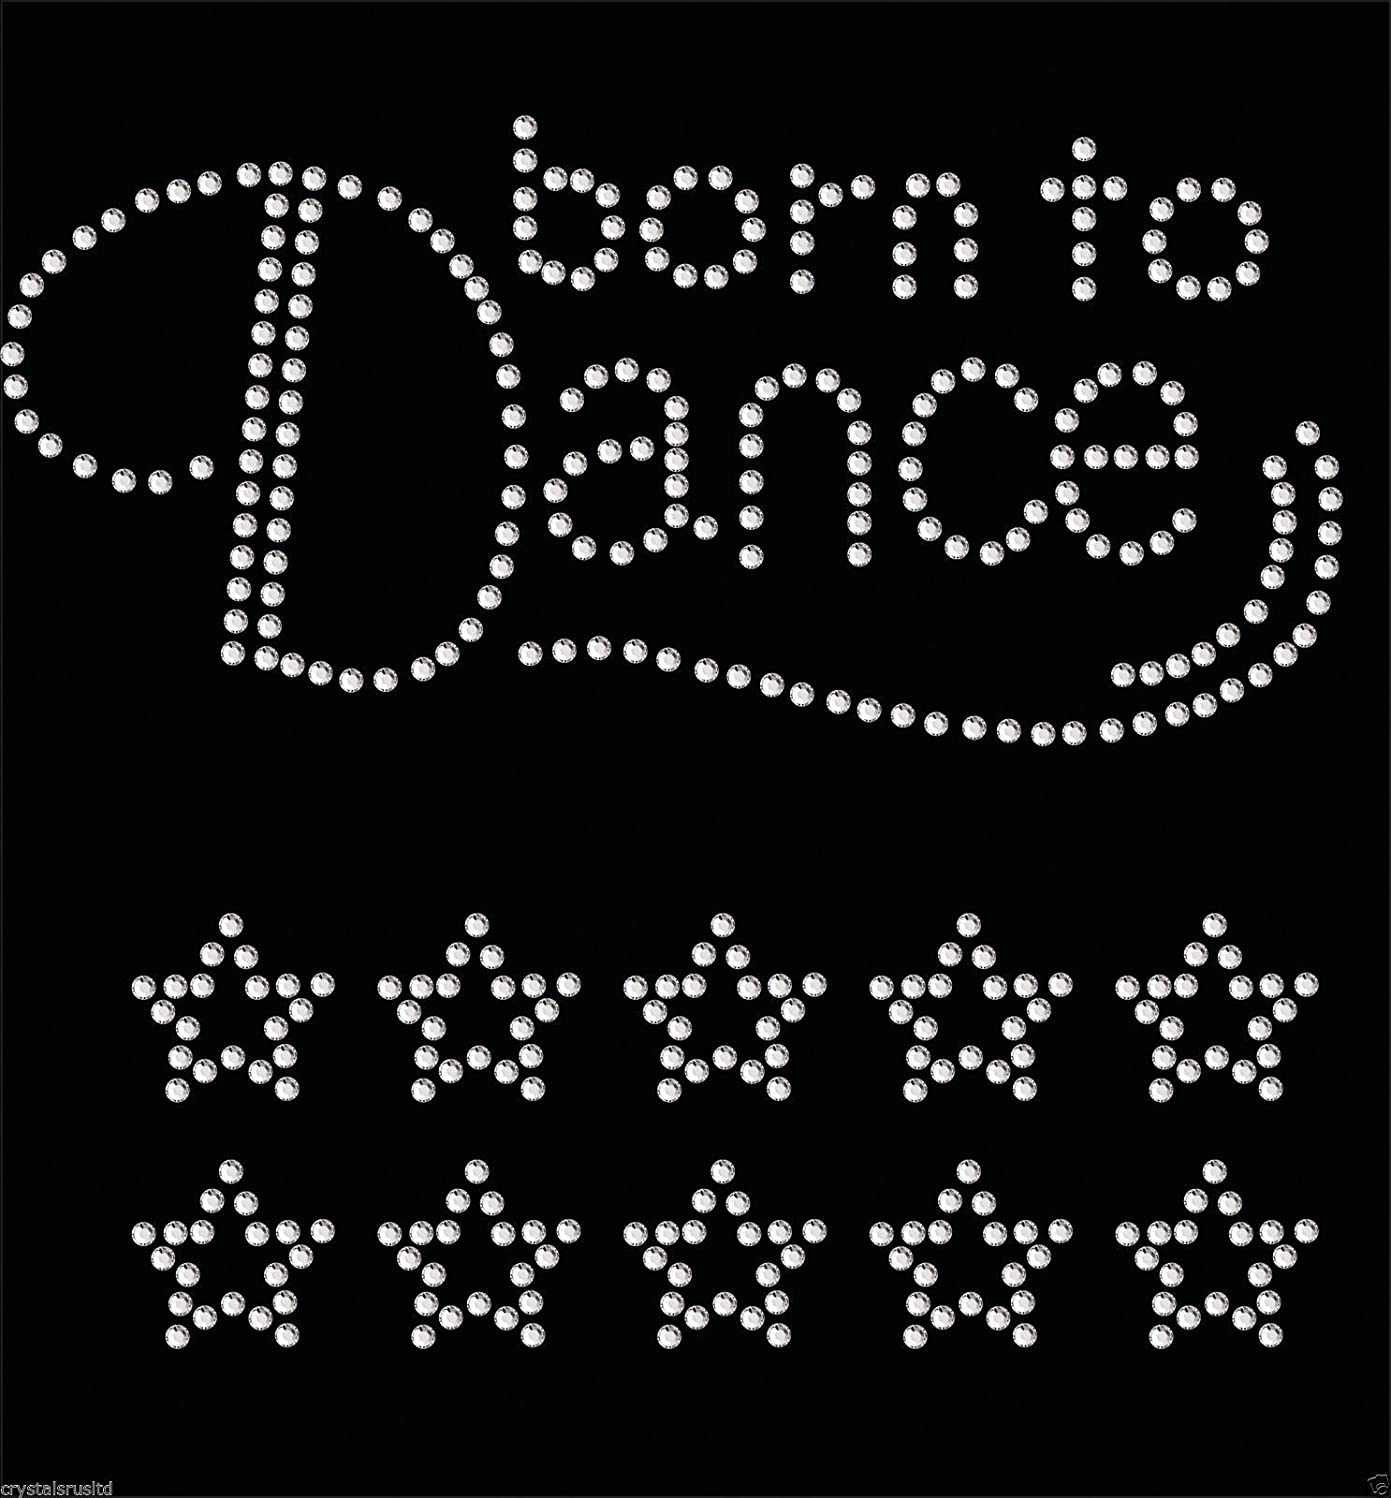 Clear Born to dance + 10 stars Iron on Rhinestone Transfer Crystal Hotflix t-shirt applique